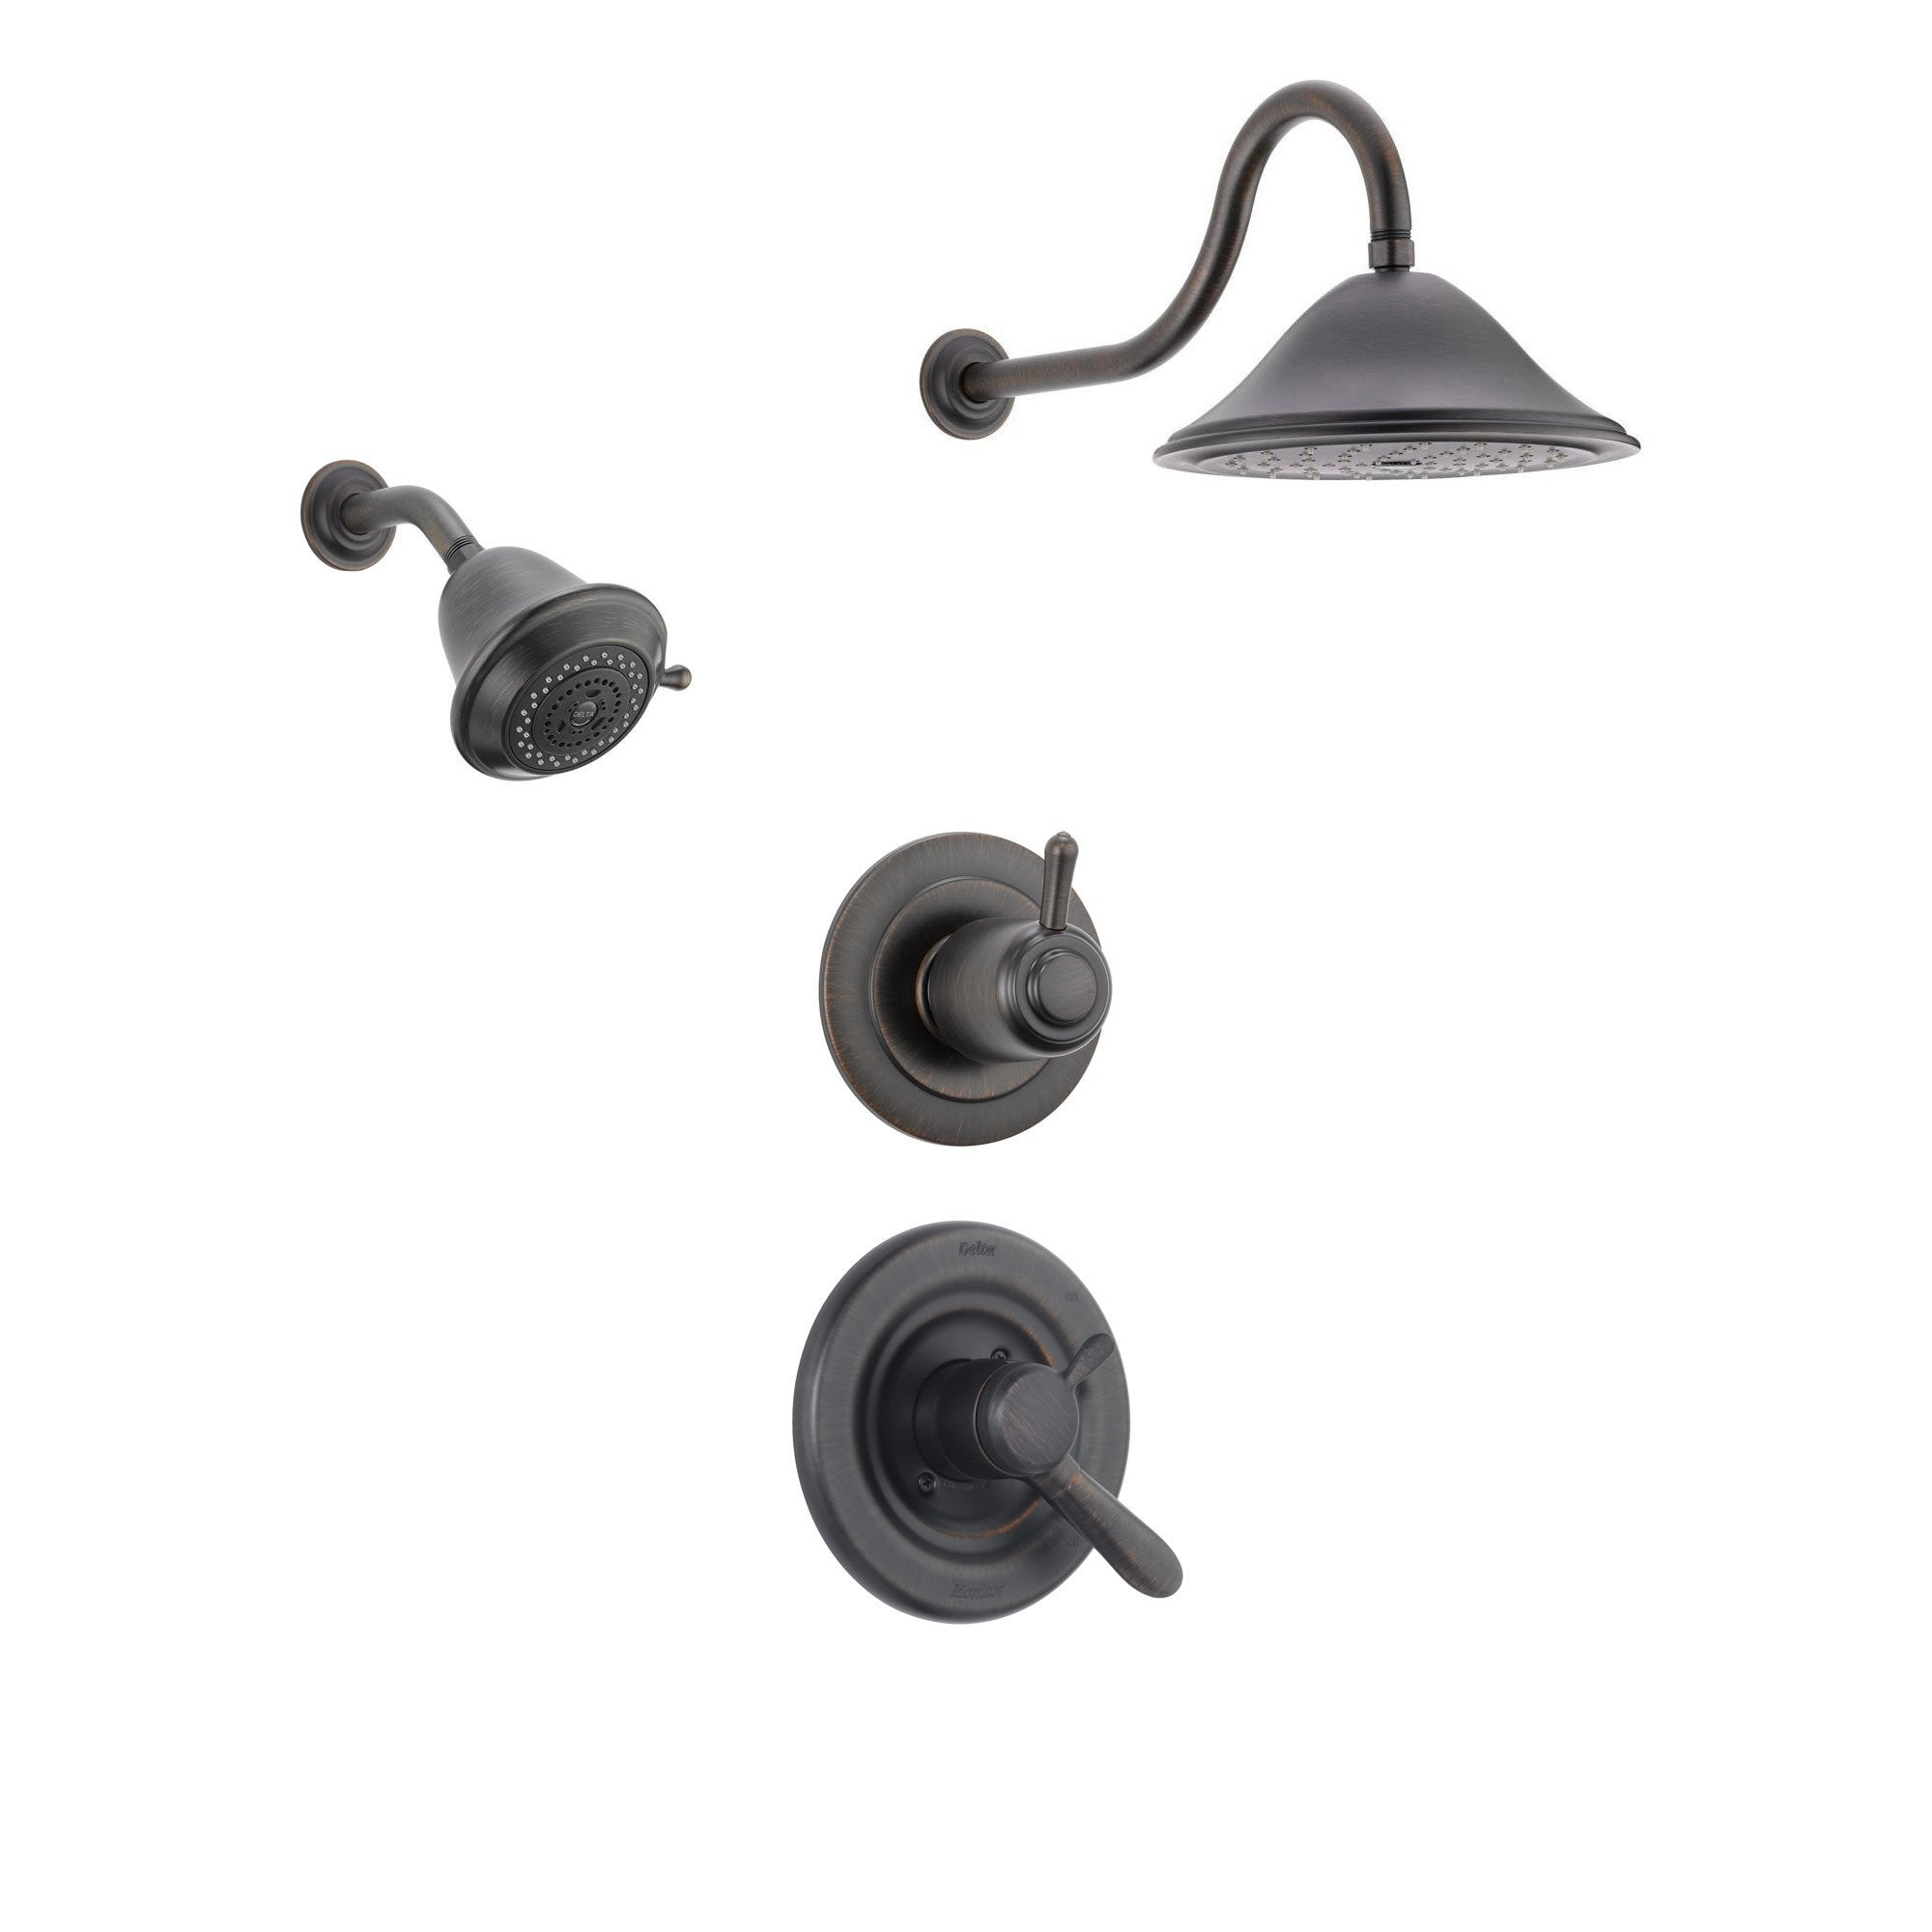 Delta Lahara Venetian Bronze Shower System with Dual Control Shower Handle, 3-setting Diverter, Large Rain Showerhead, and Smaller Wall Mount Showerhead SS173883RB